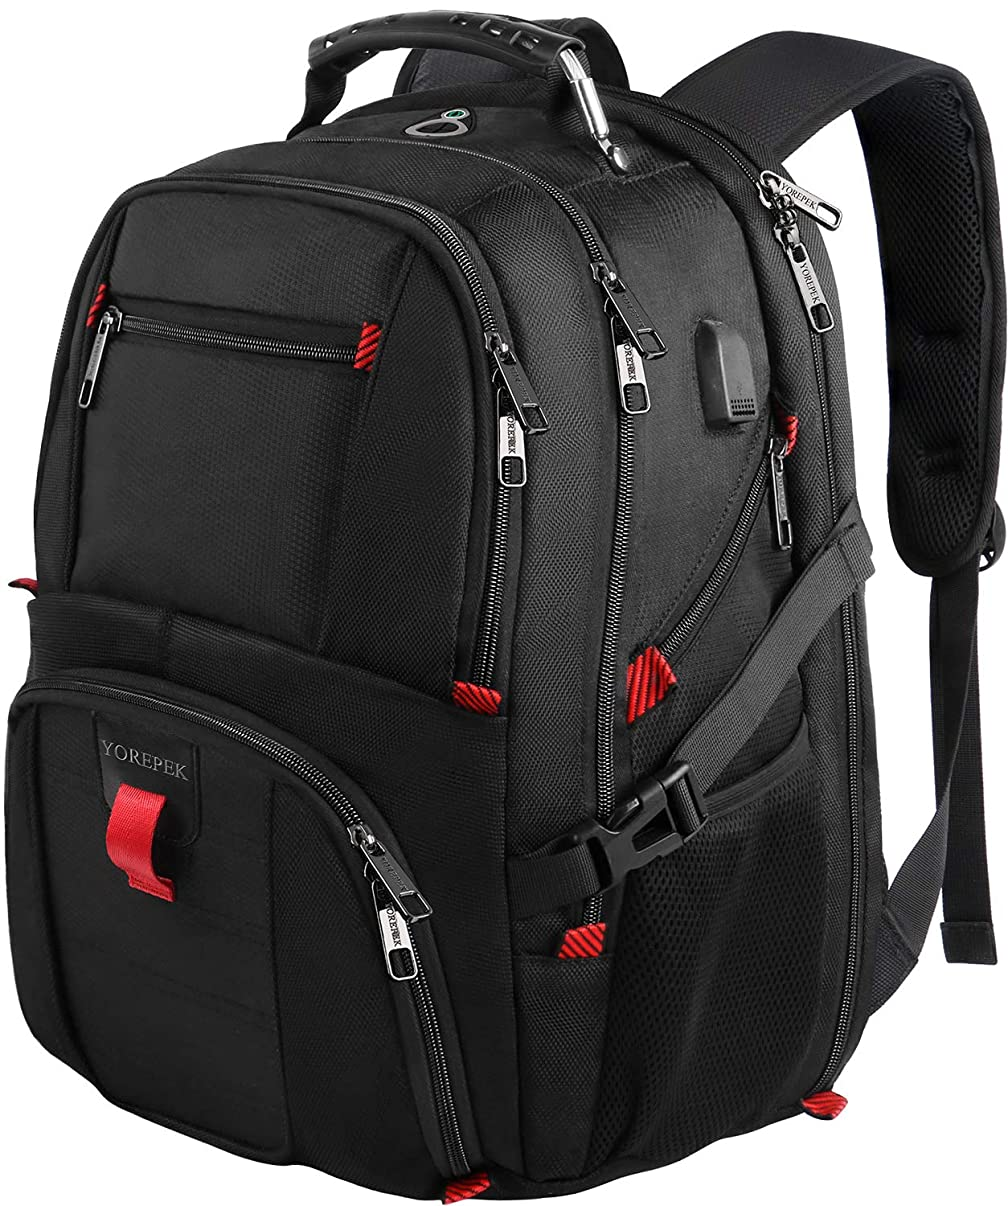 YOREPEK 18.4 Laptop Backpack,Large Computer Backpacks Fit Most 17.3 and 18 Inch Laptop with USB Charger Port,TSA Friendly Flight Approved Weekend Carry on Backpack w/Luggage Strap for Men and Women